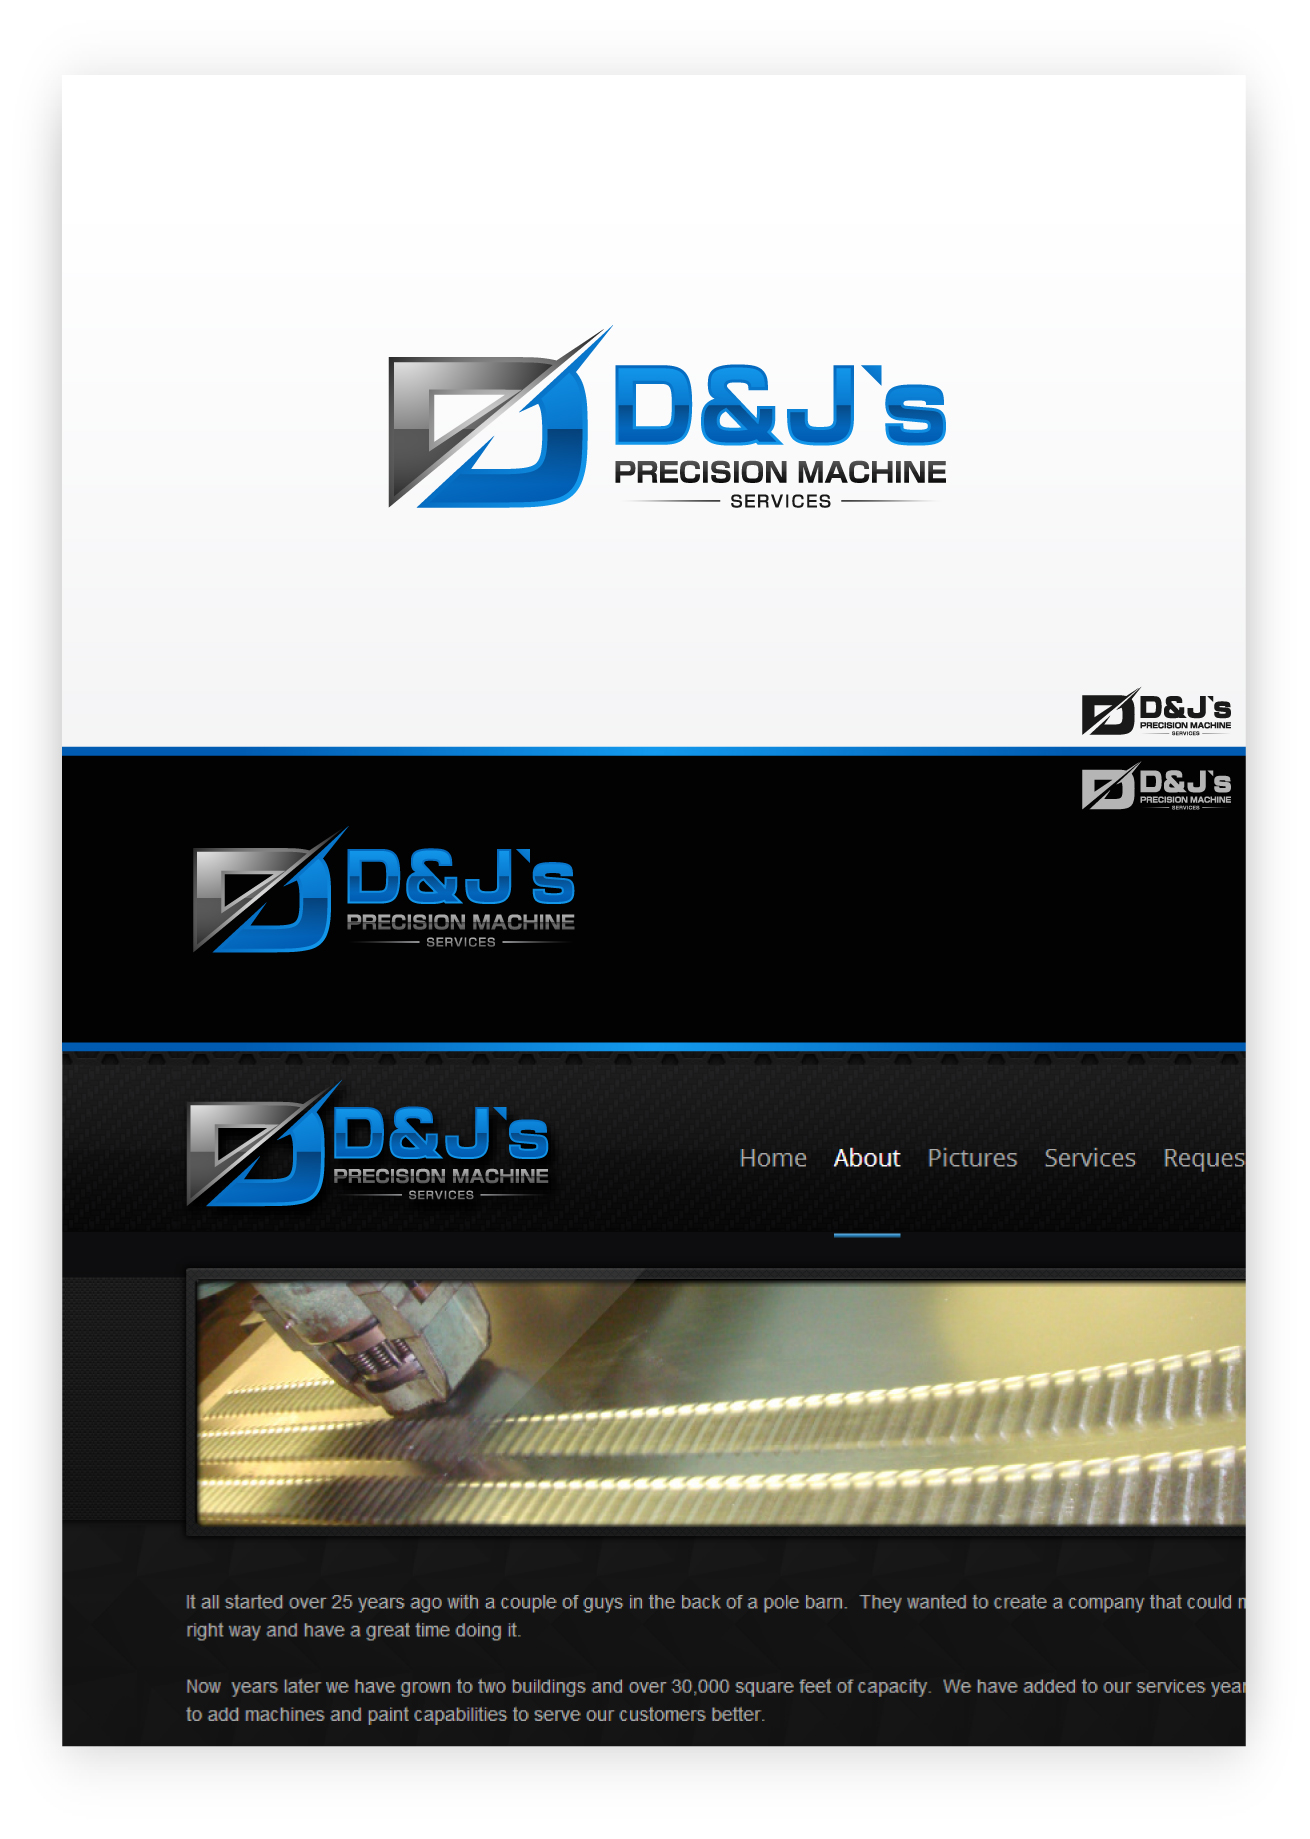 Logo Design by zoiDesign - Entry No. 87 in the Logo Design Contest Creative Logo Design for D & J's Precision Machine Services.